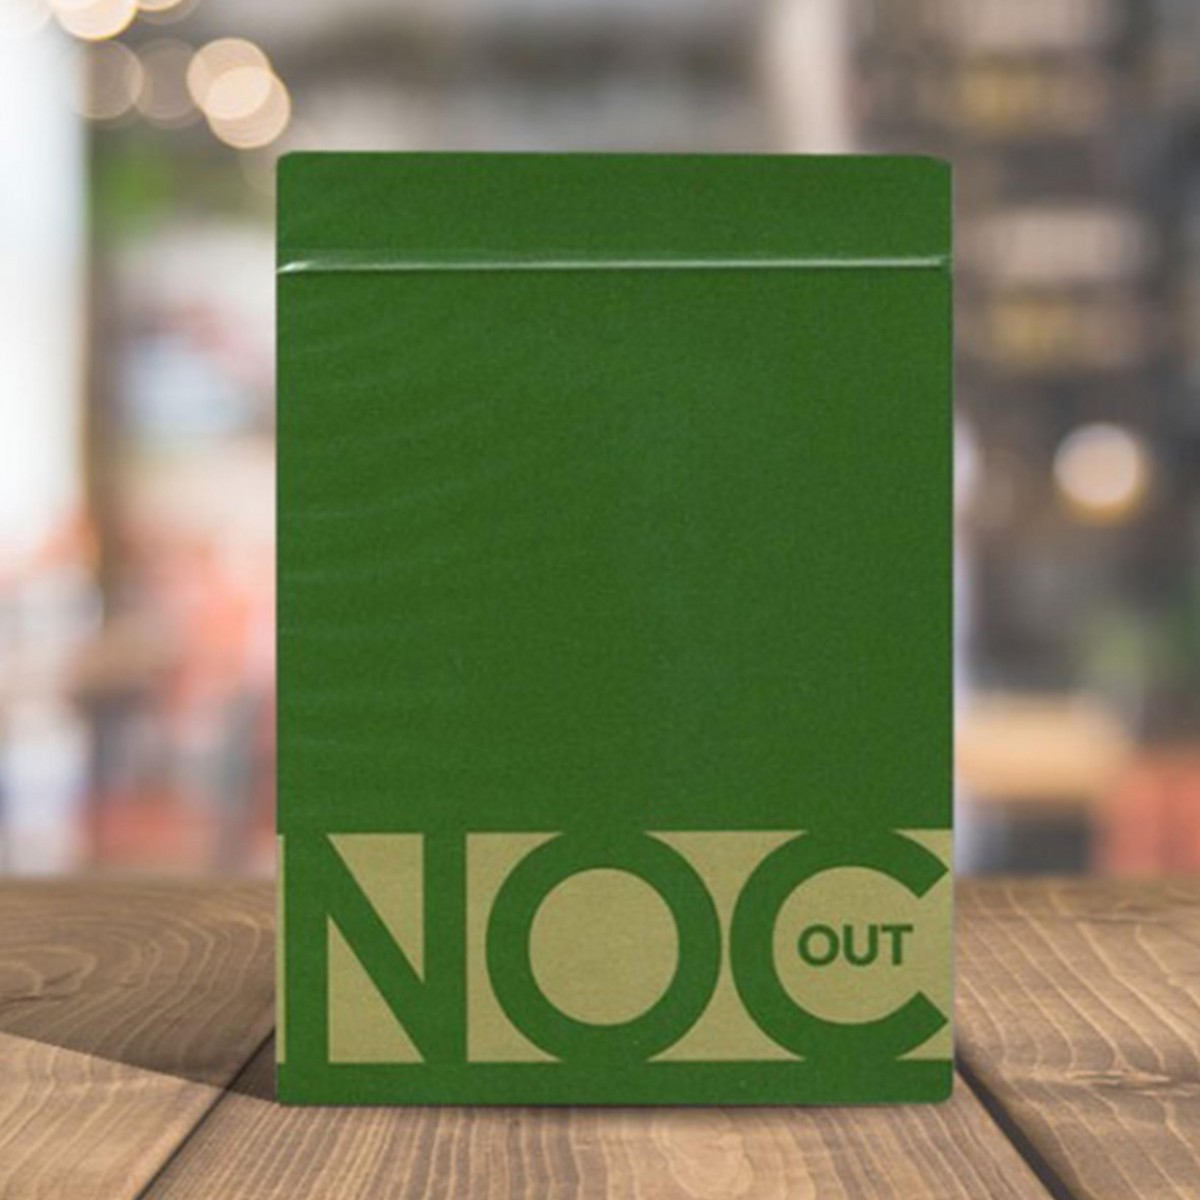 NOC Out Green and Gold playing cards